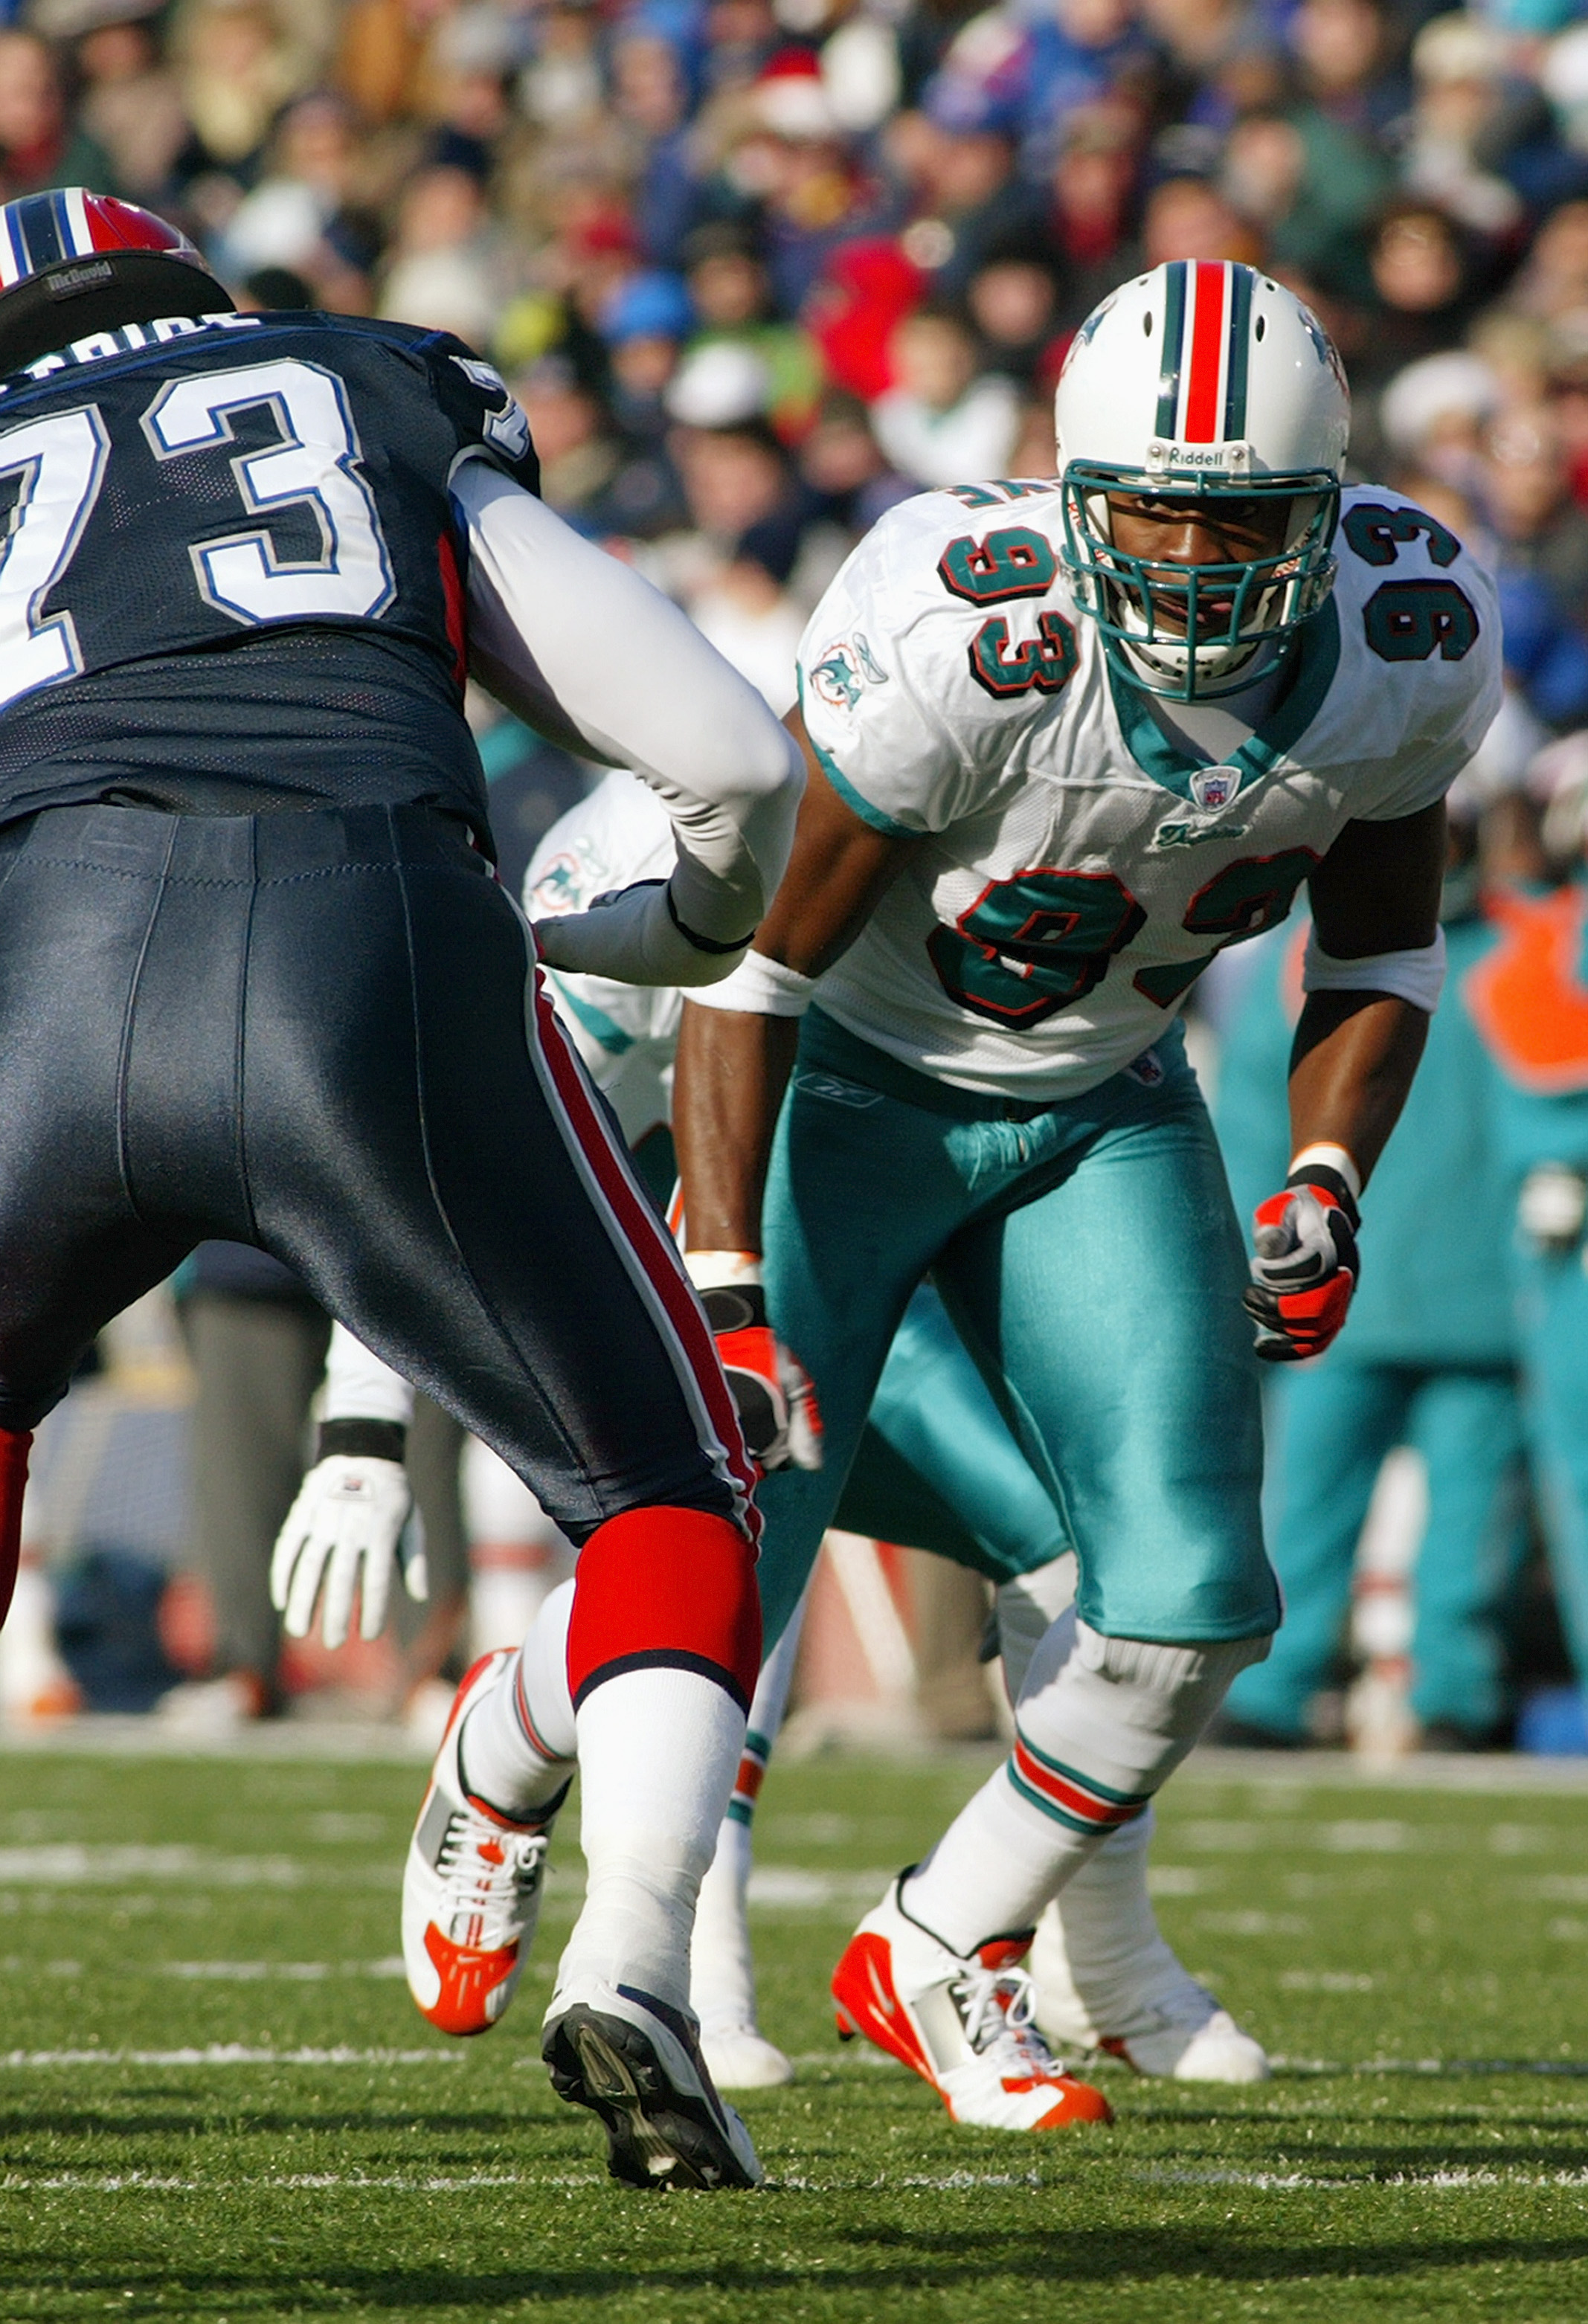 ORCHARD PARK, NY - DECEMBER 21:  Defensive end Adewale Ogunleye #93 of the Miami Dolphins looks to avoid getting blocked by offensive tackle Marcus Price #73 of the Buffalo Bills during the game on December 21, 2003 at Ralph Wilson Stadium in Orchard Park